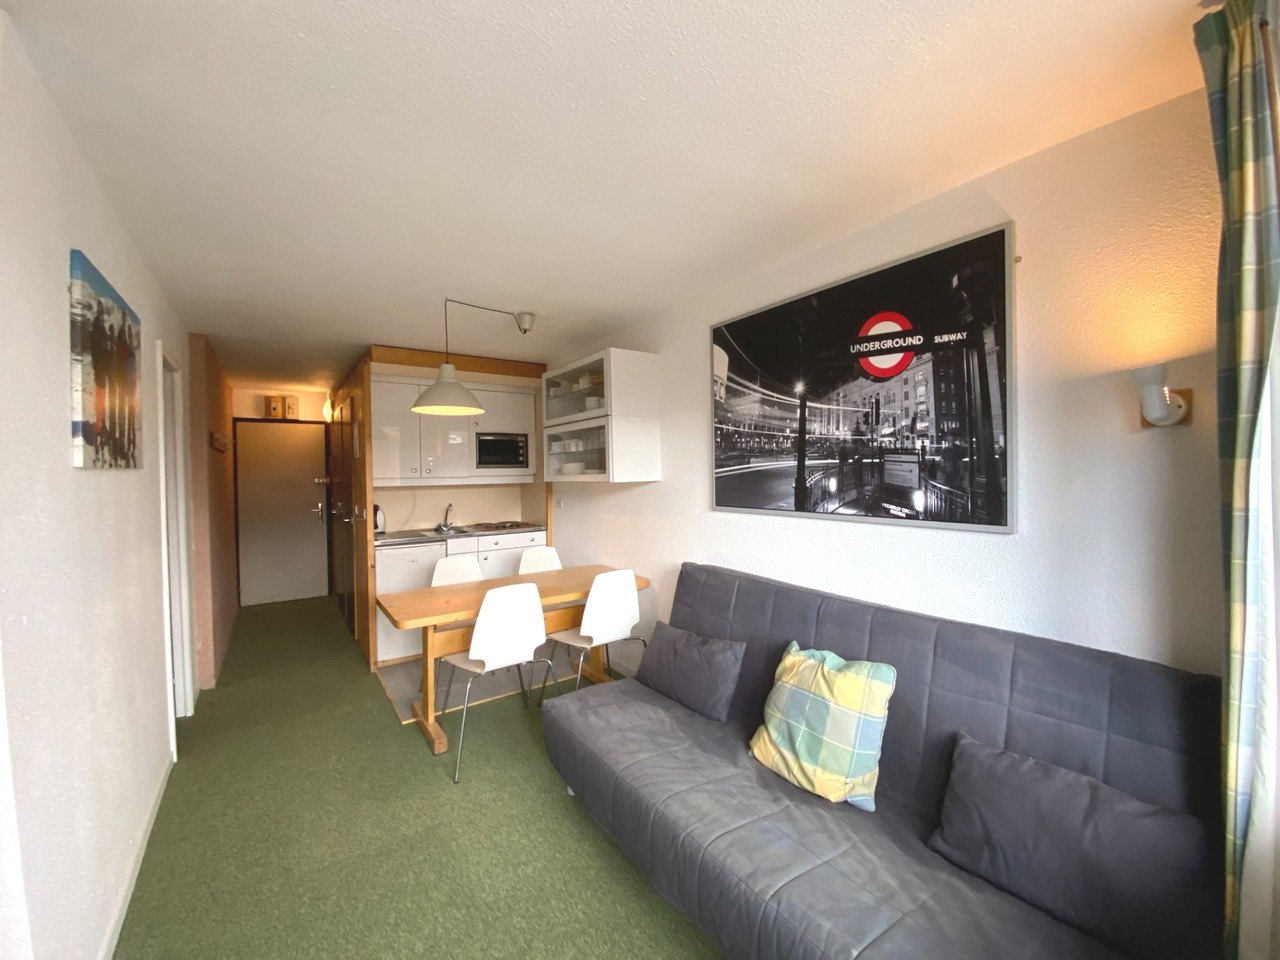 1 BEDROOM + 1 CABIN APARTMENT CLOSE TO THE CENTRE AND THE SLOPES Accommodation in Val Thorens